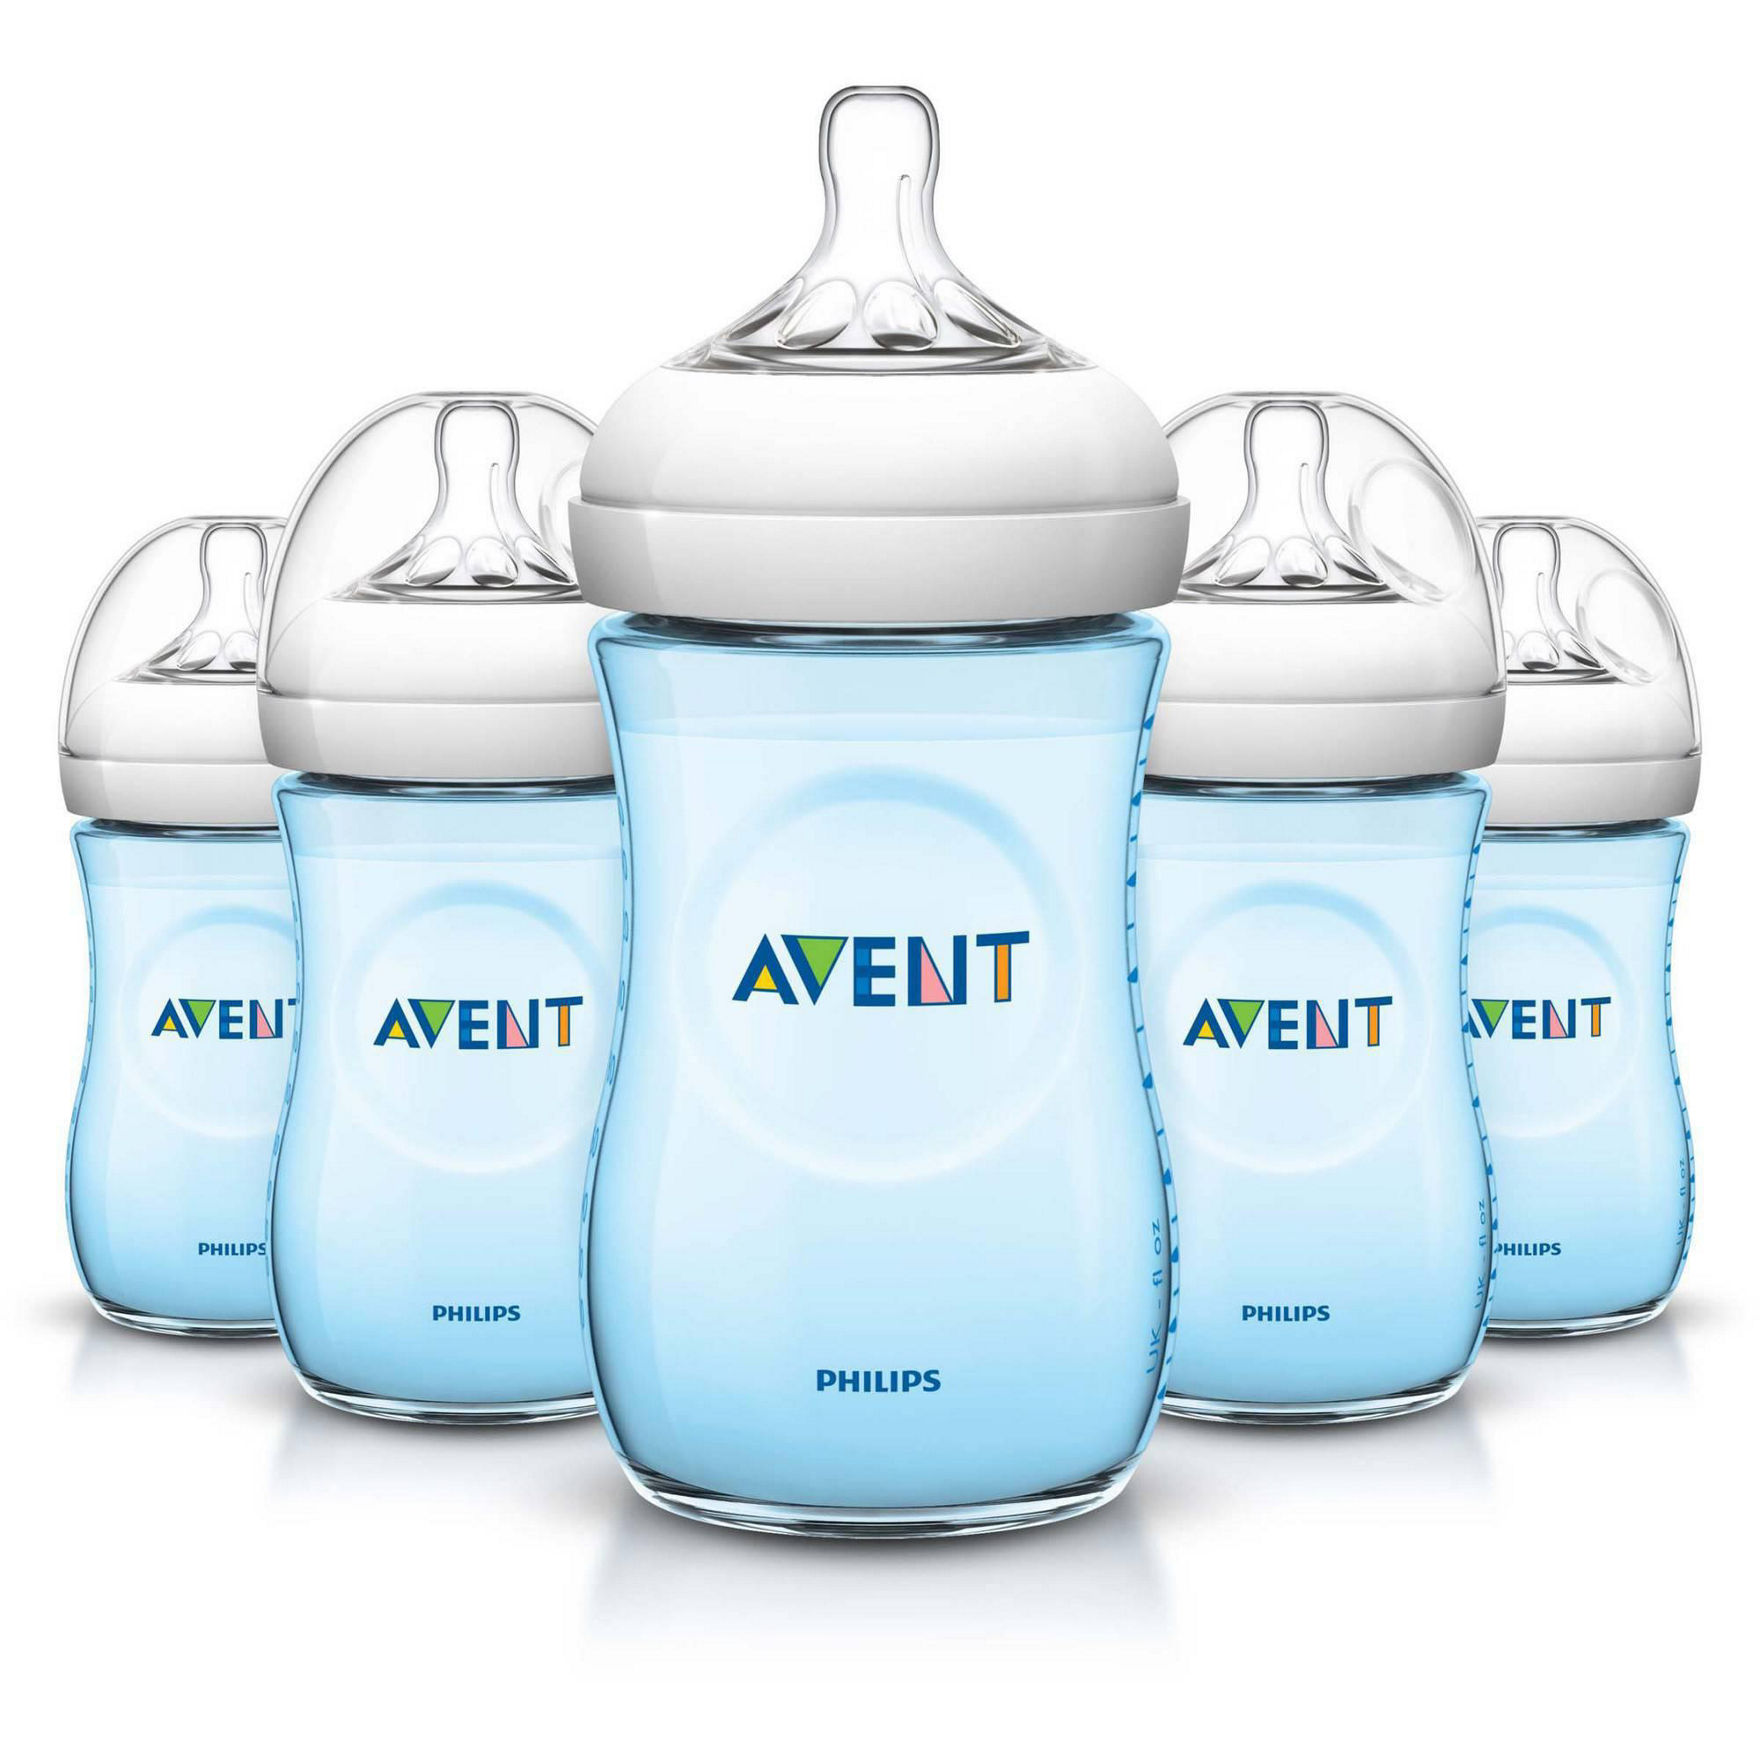 Philips Avent Blue Bottle Feeding Prep & Tools